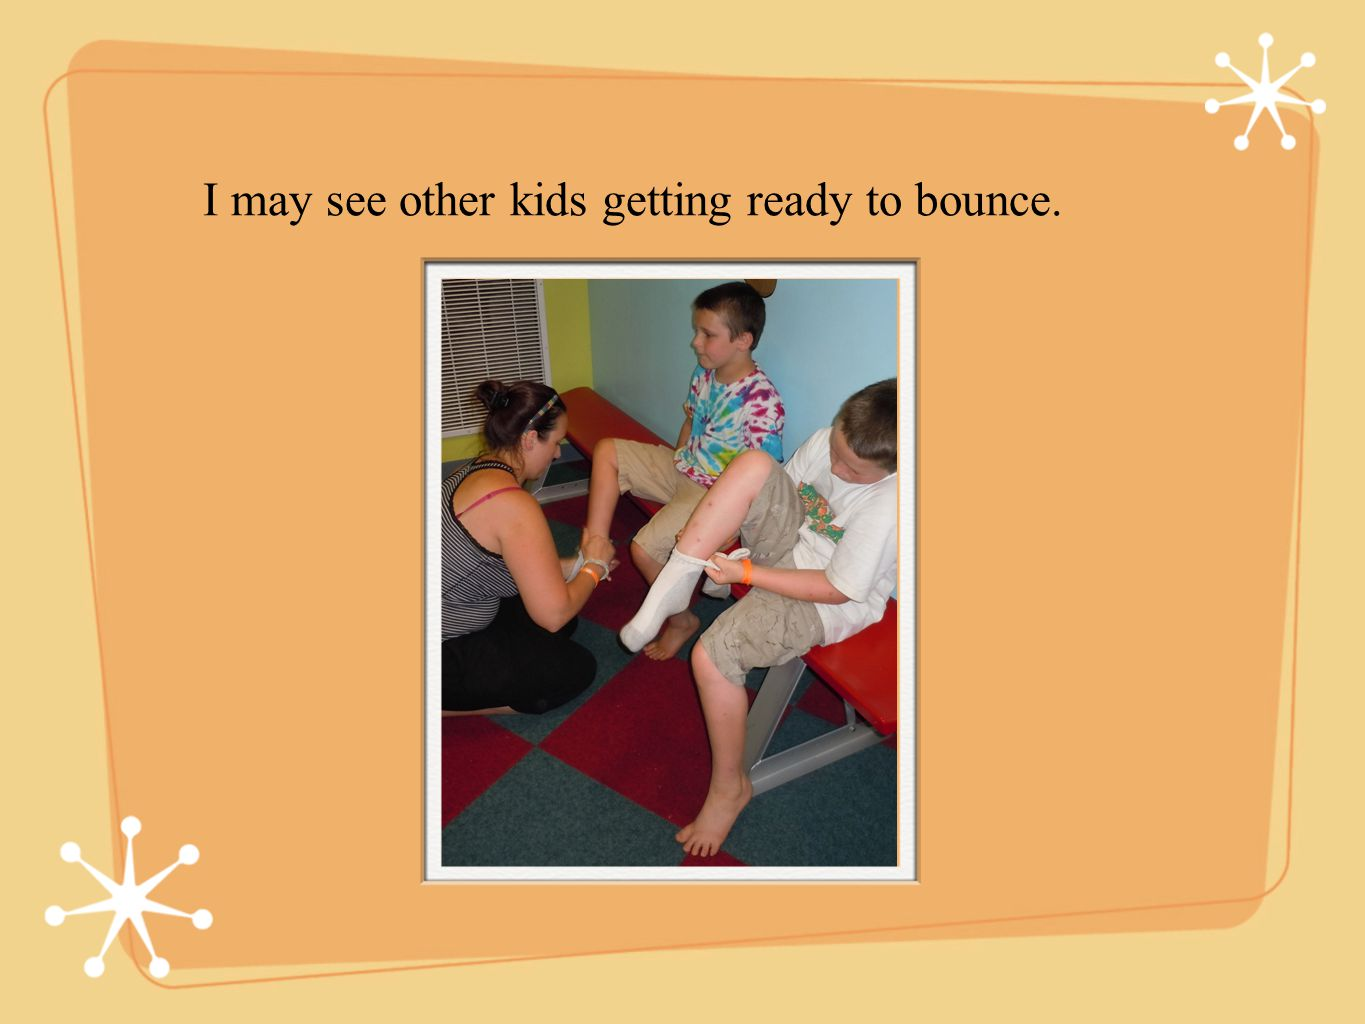 I may see other kids getting ready to bounce.